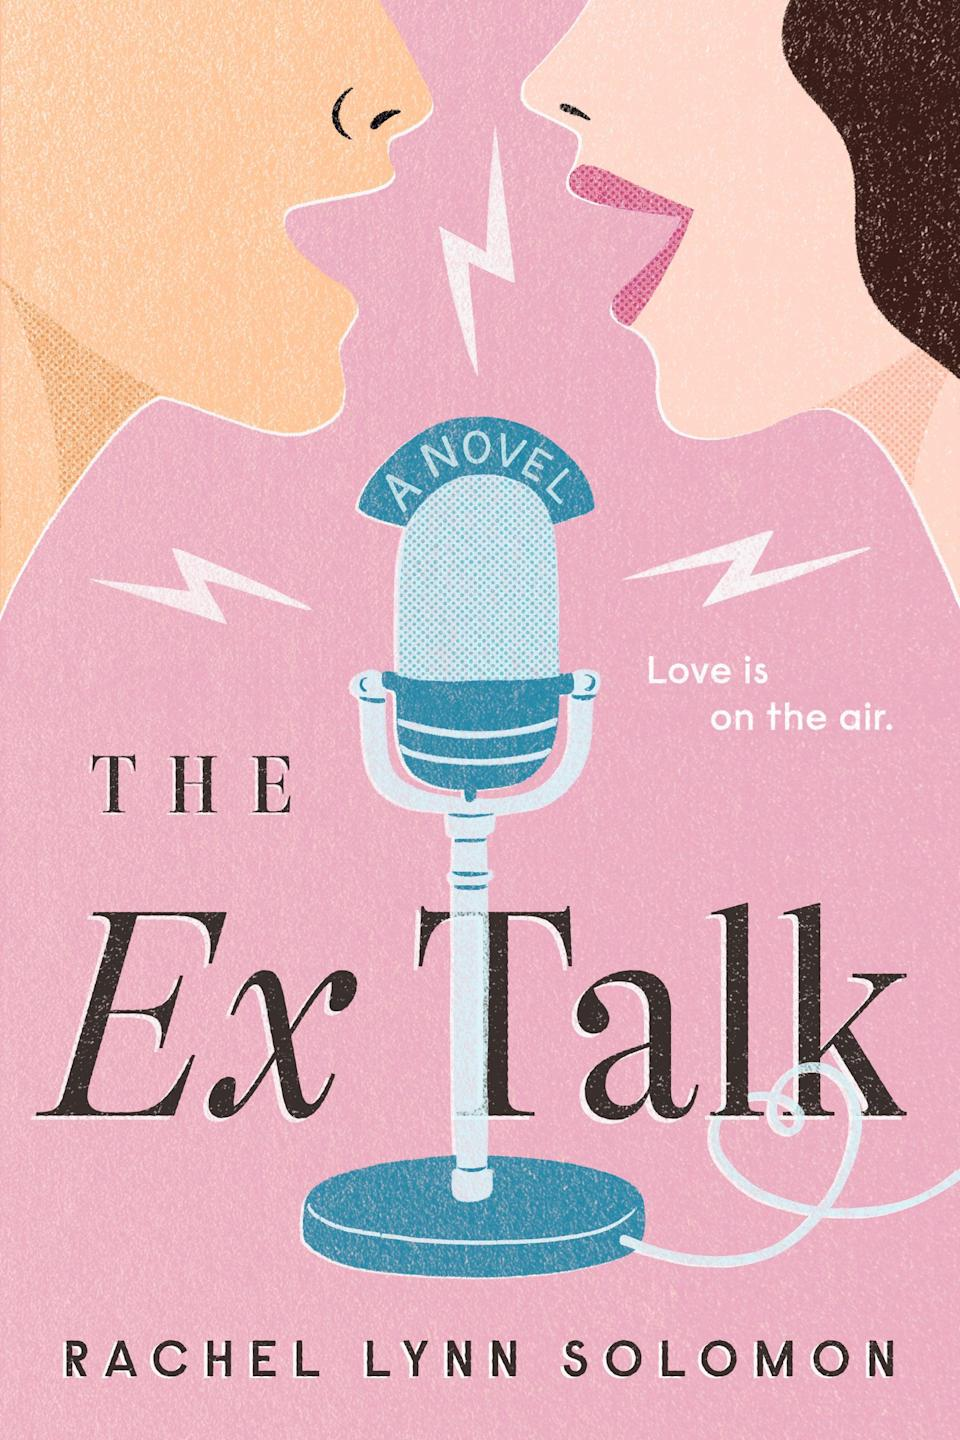 <p>Rachel Lynn Solomon's highly anticipated adult debut <span><strong>The Ex Talk</strong></span> more than lives up to the hype. This witty story about a fake ex-relationship between radio hosts is a wild ride that leads to real romance between the protagonists - the only trouble is, both of their careers will be on the line if their listeners realize their radio show about exes giving relationship advice was built on a lie. </p> <p><em>Out Jan. 26</em></p>